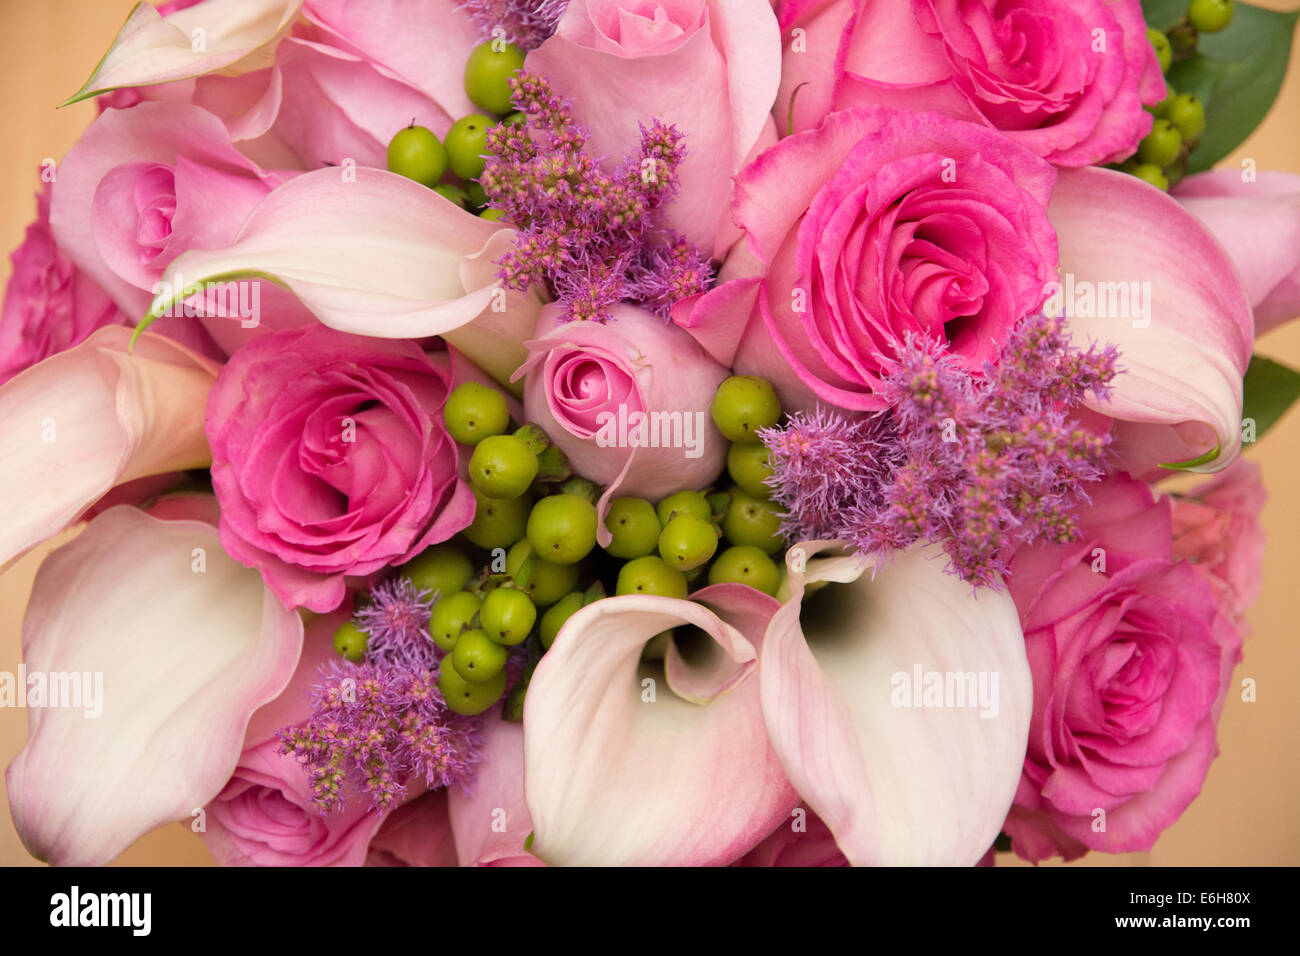 Pink calla lily bouquet stock photos pink calla lily bouquet stock a bouquet of flowers in beautiful pink colors roses and calla lillies stock izmirmasajfo